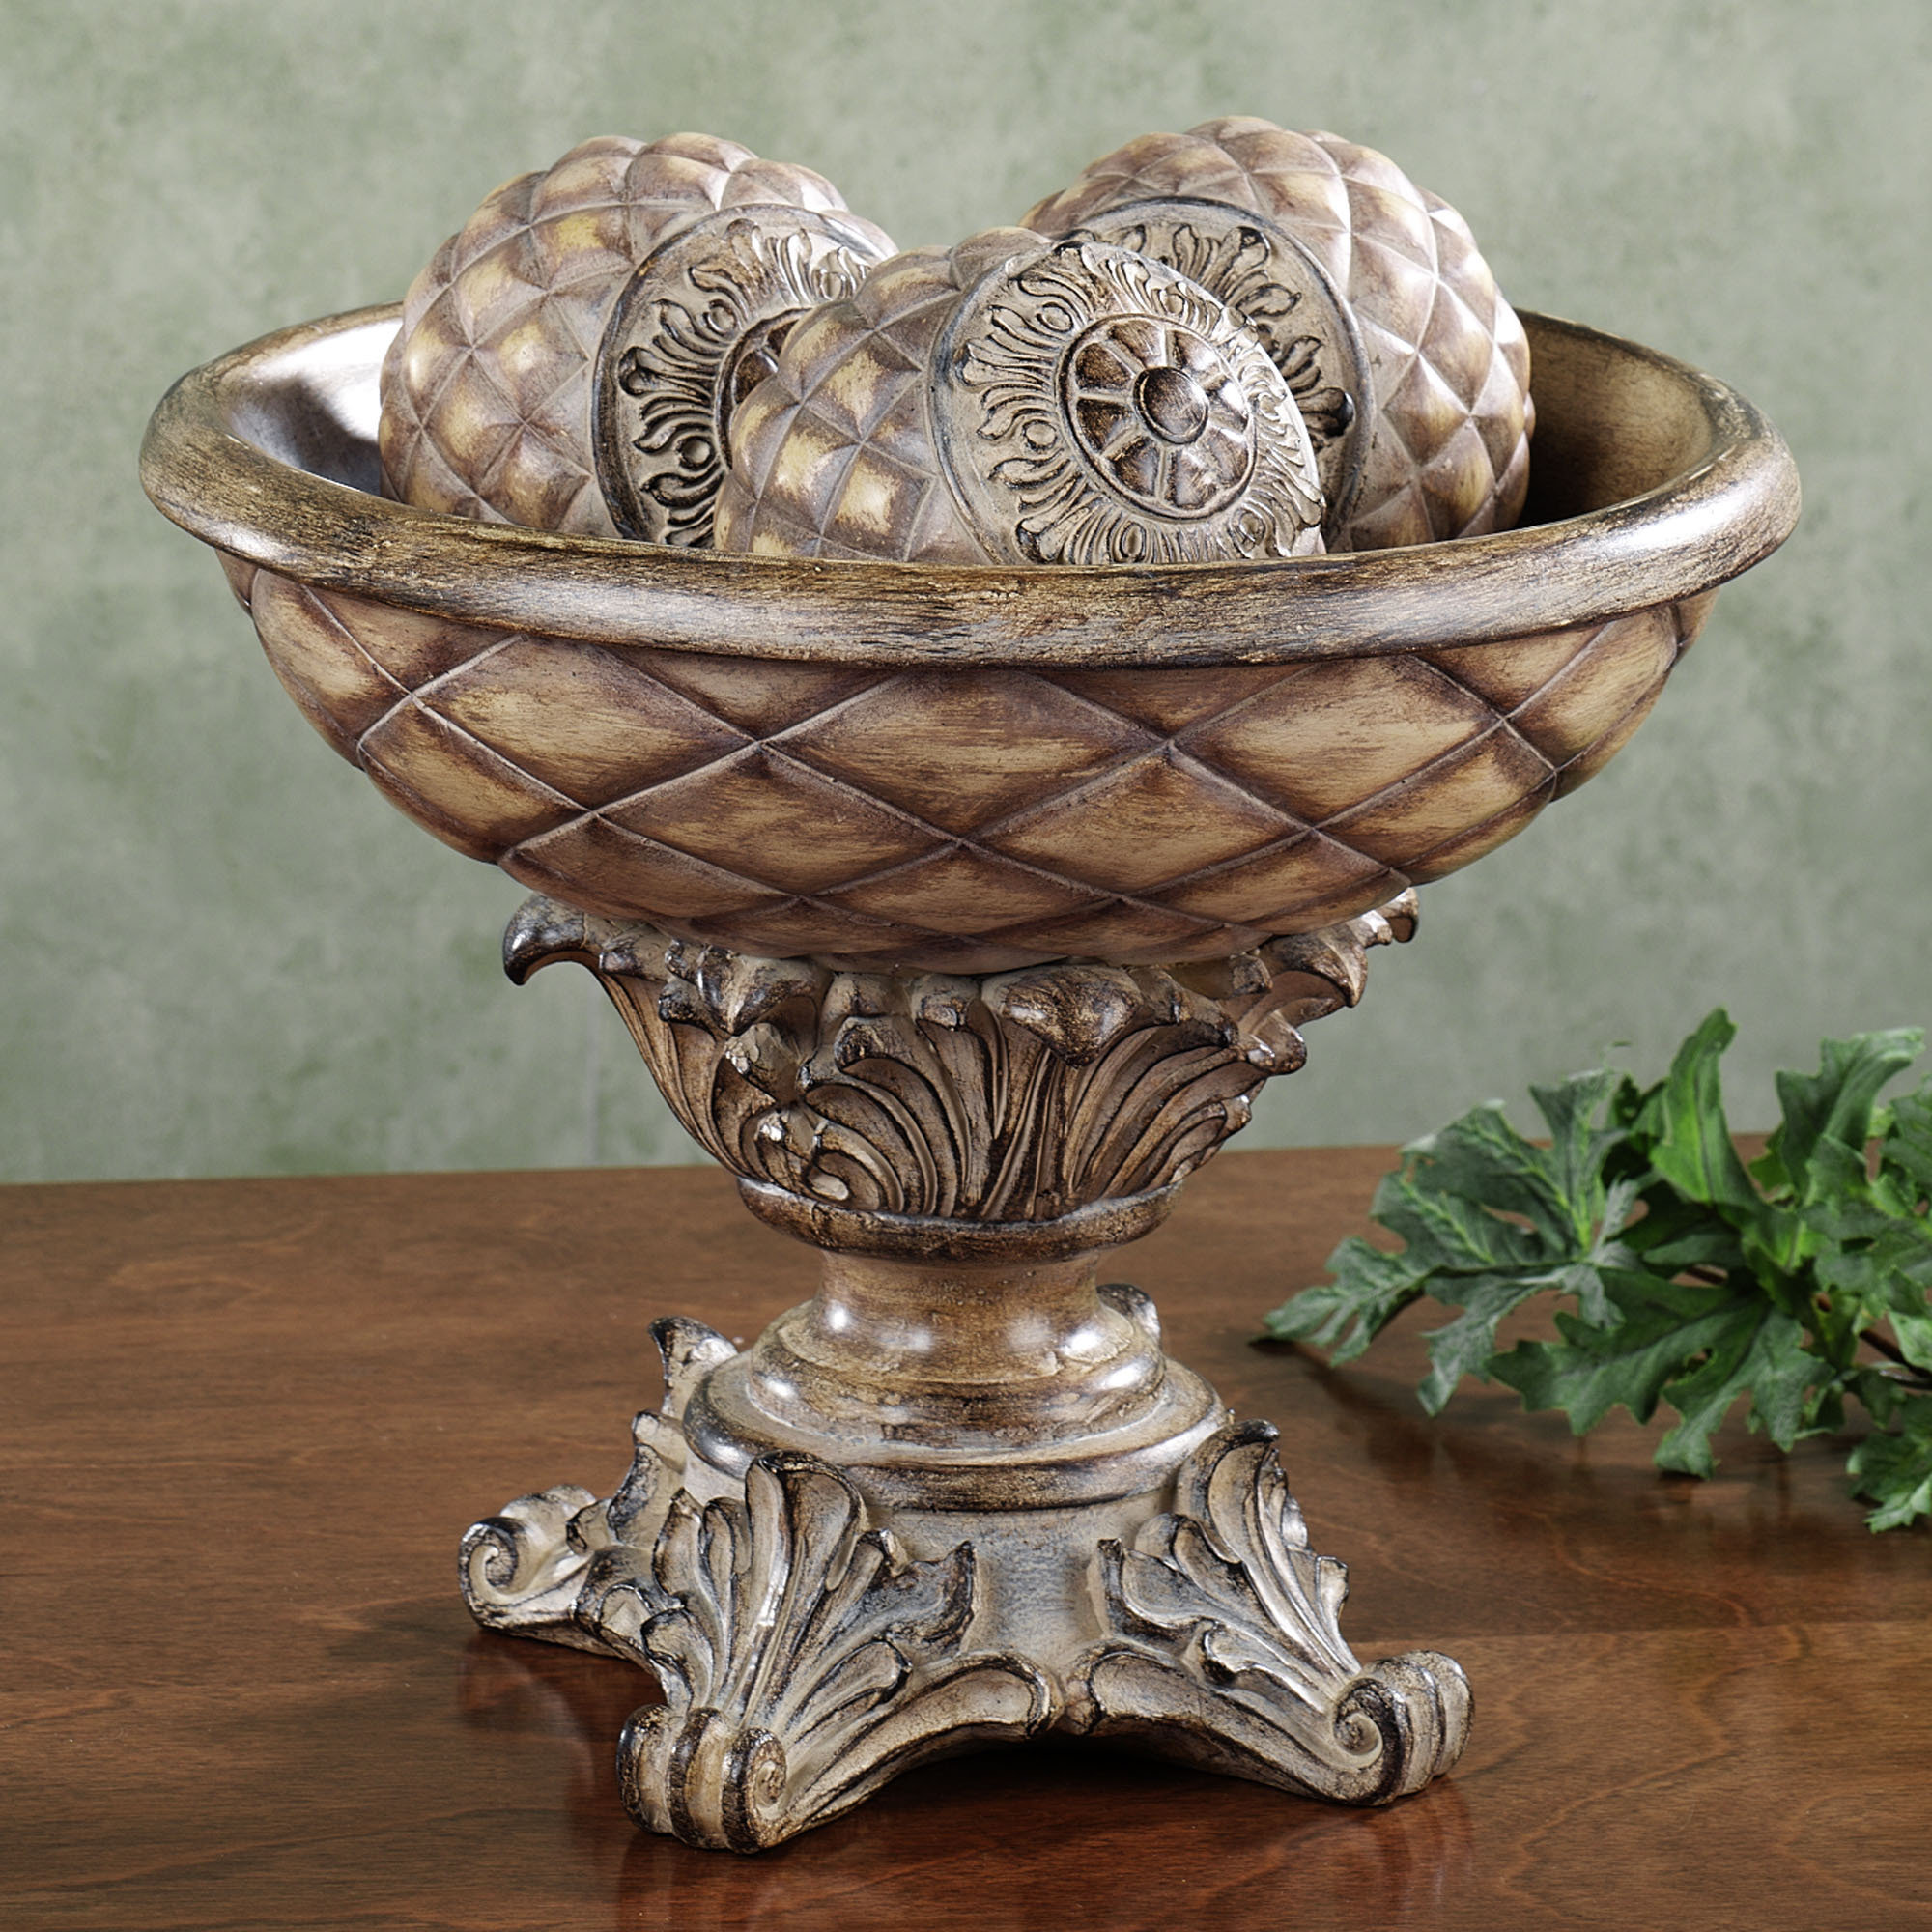 Centerpiece Bowl with decorative orbs for table accessories ideas